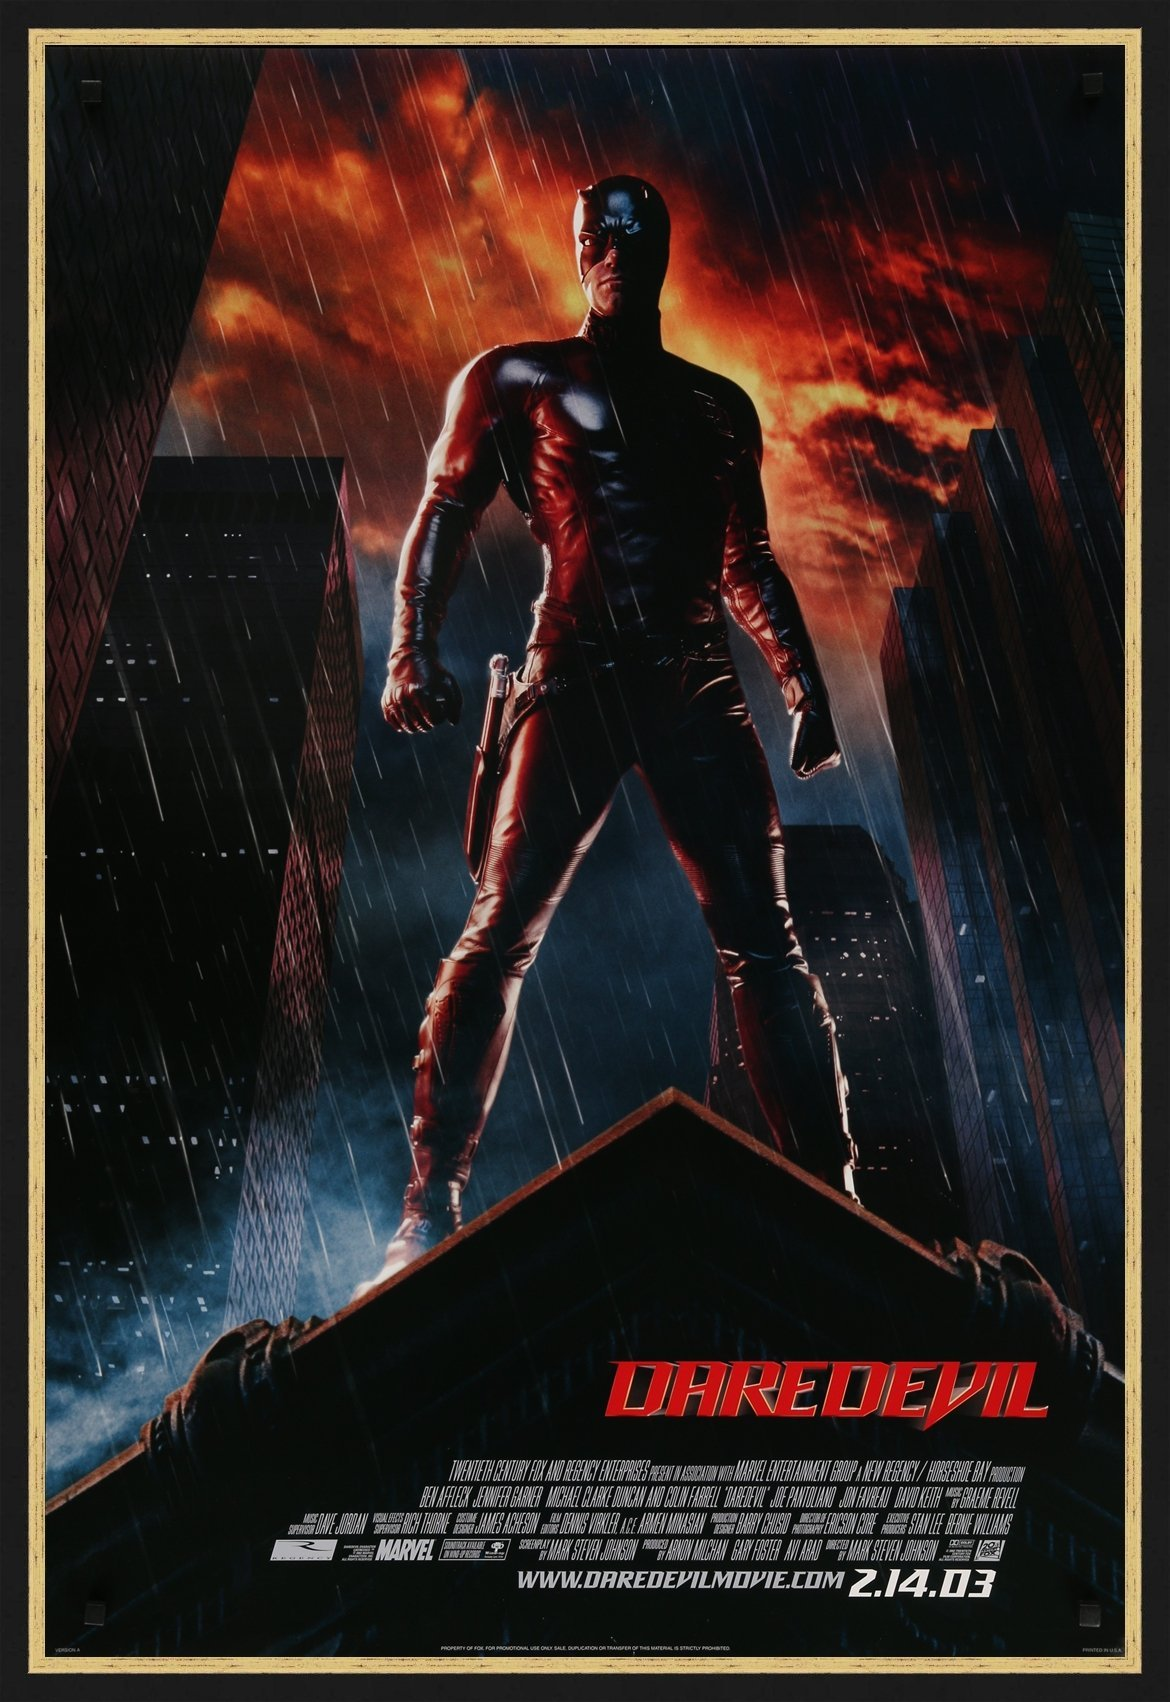 An original movie poster for the Marvel film Daredevil